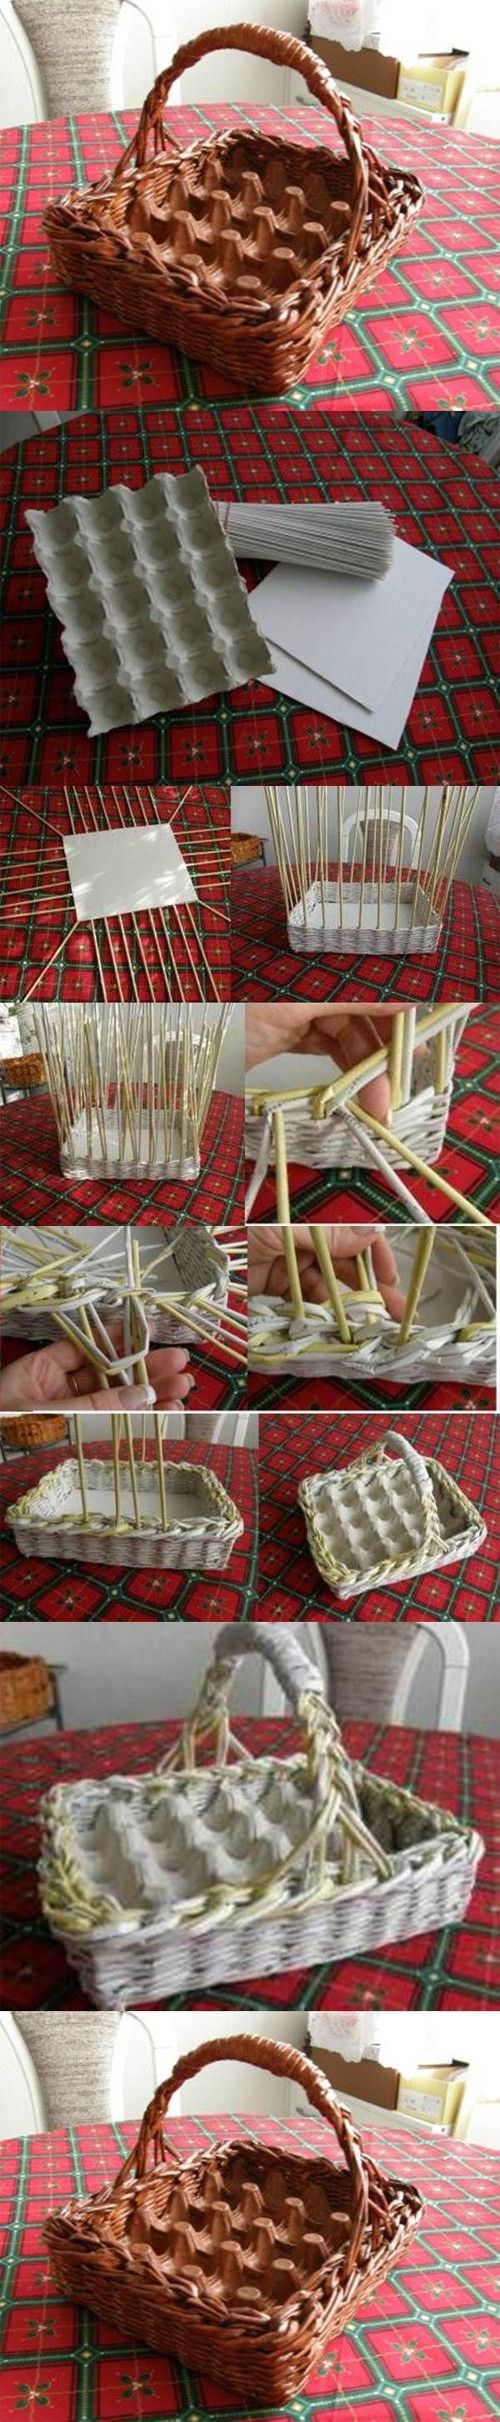 Easter is coming. Are you starting to prepare for the decorations? Let's make some nice woven paper crafts for Easter.